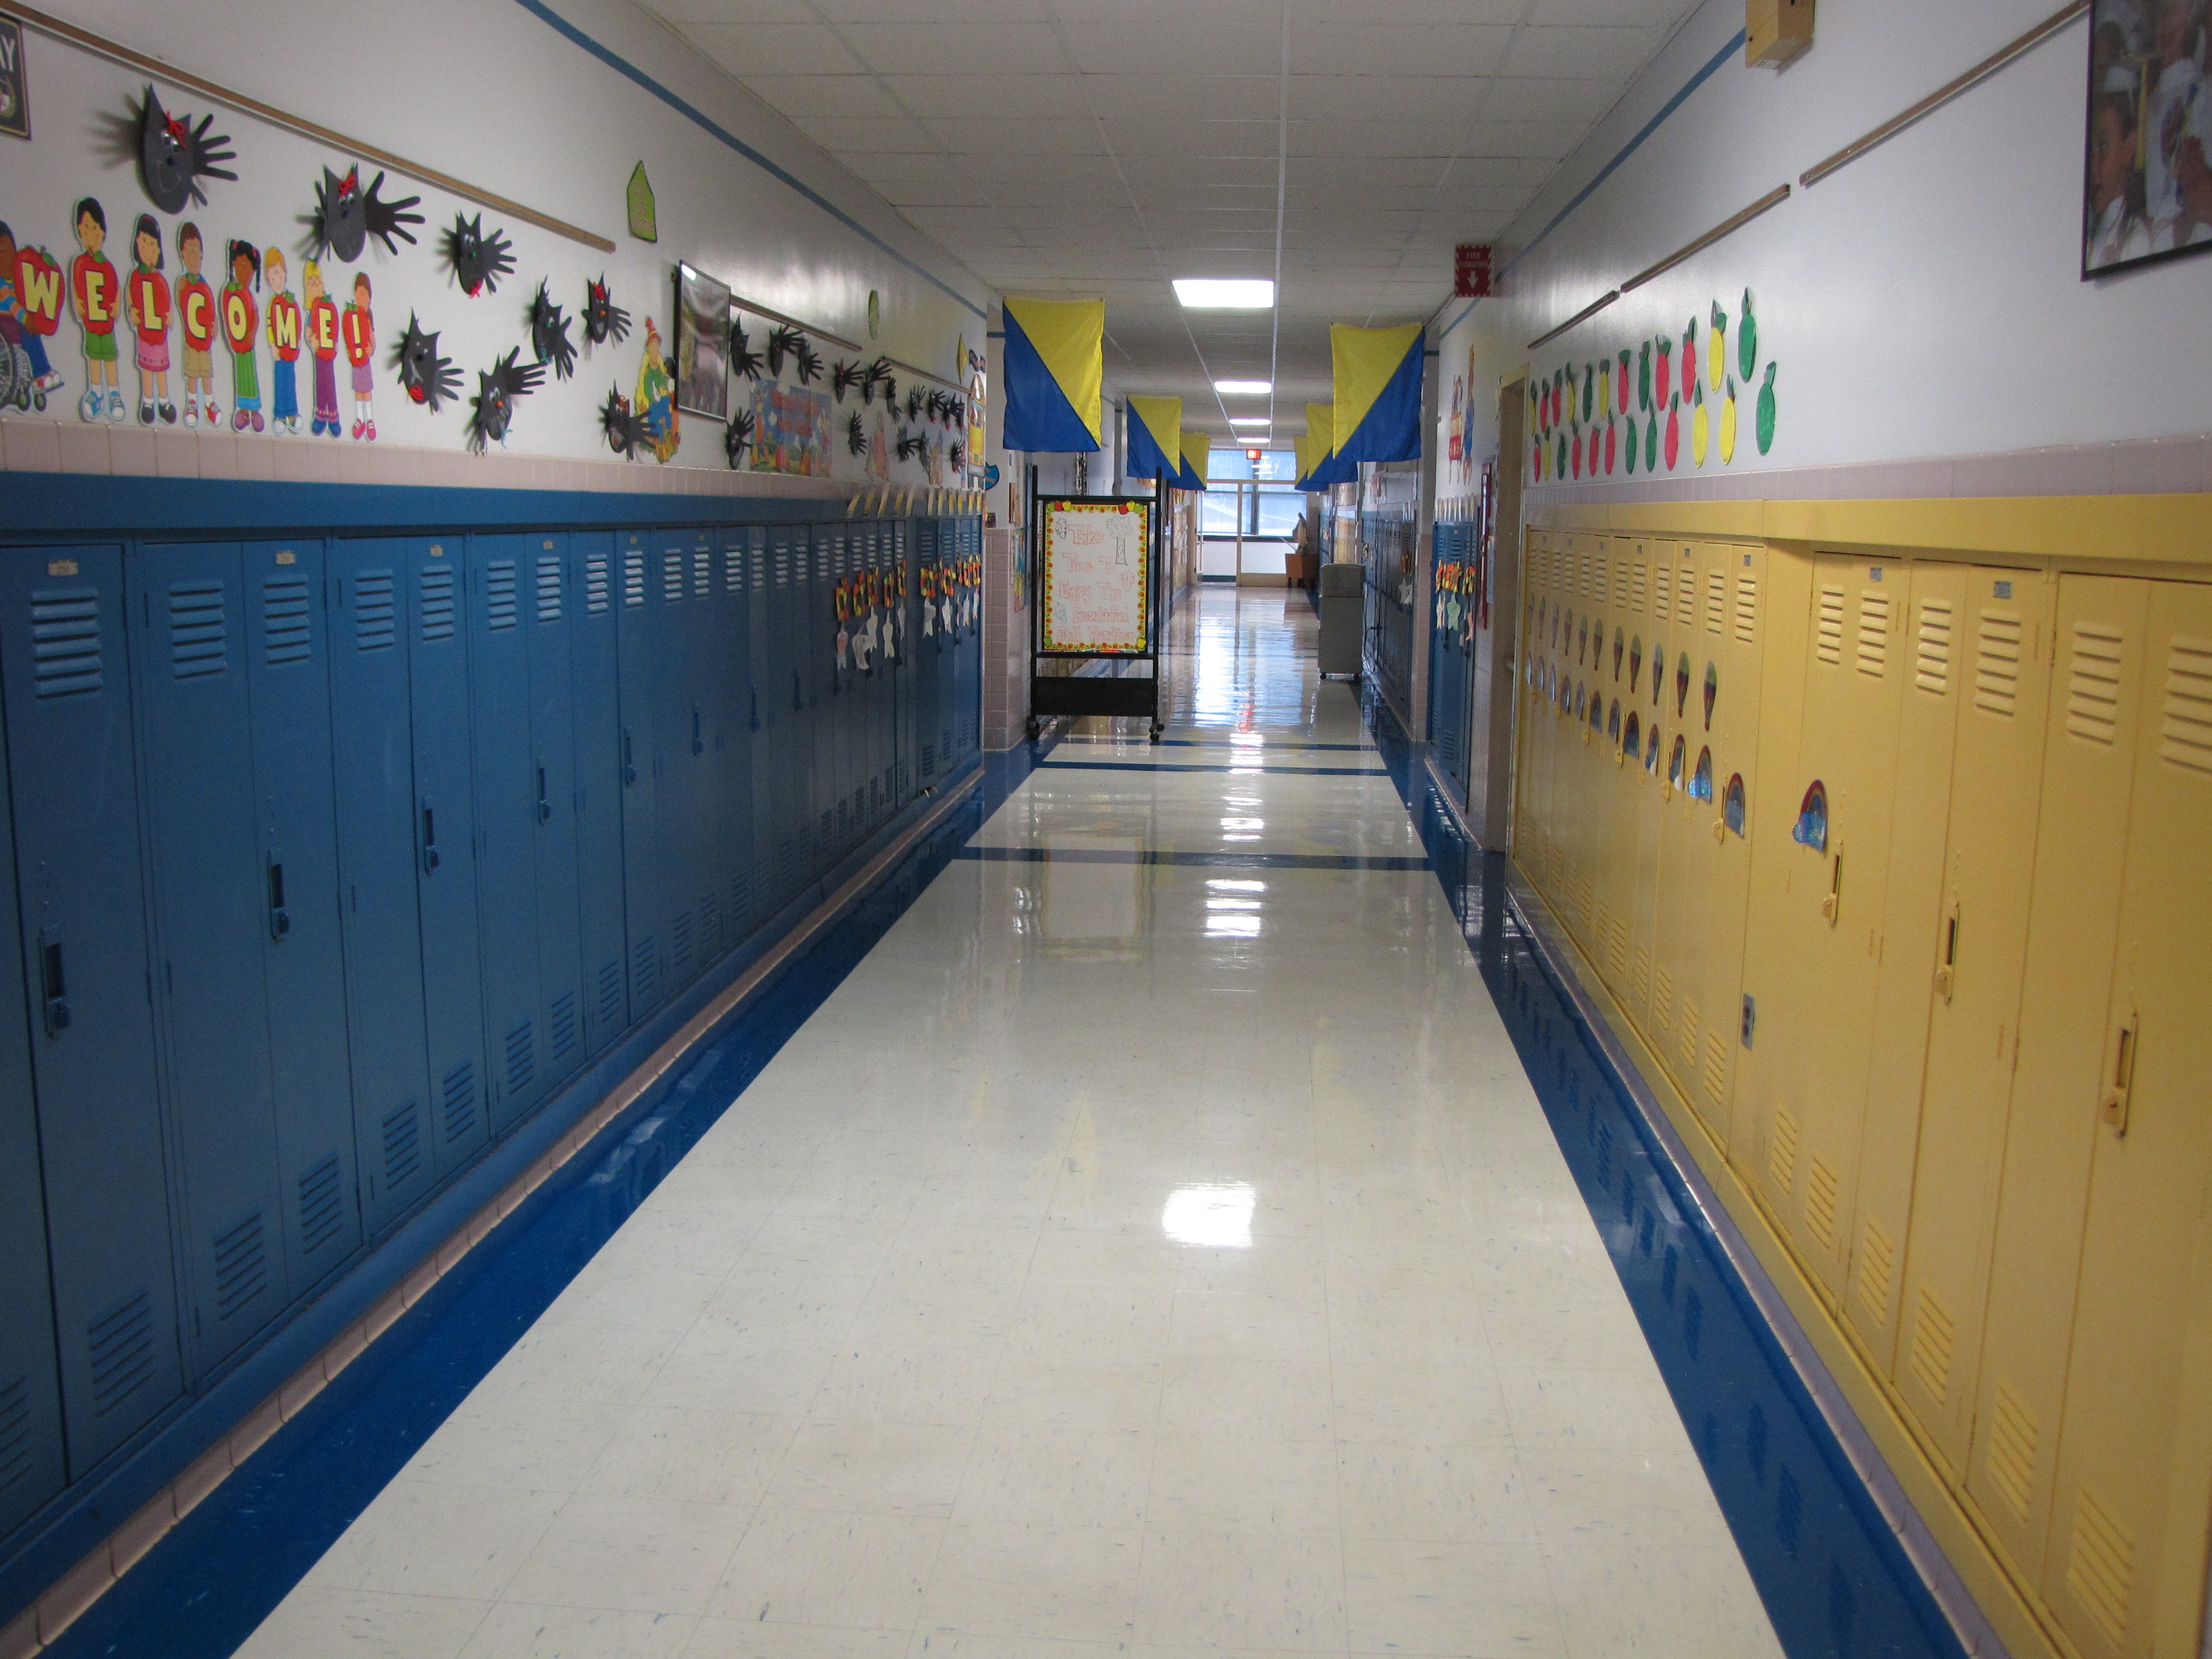 To Escape Bullying, I Left My Public School